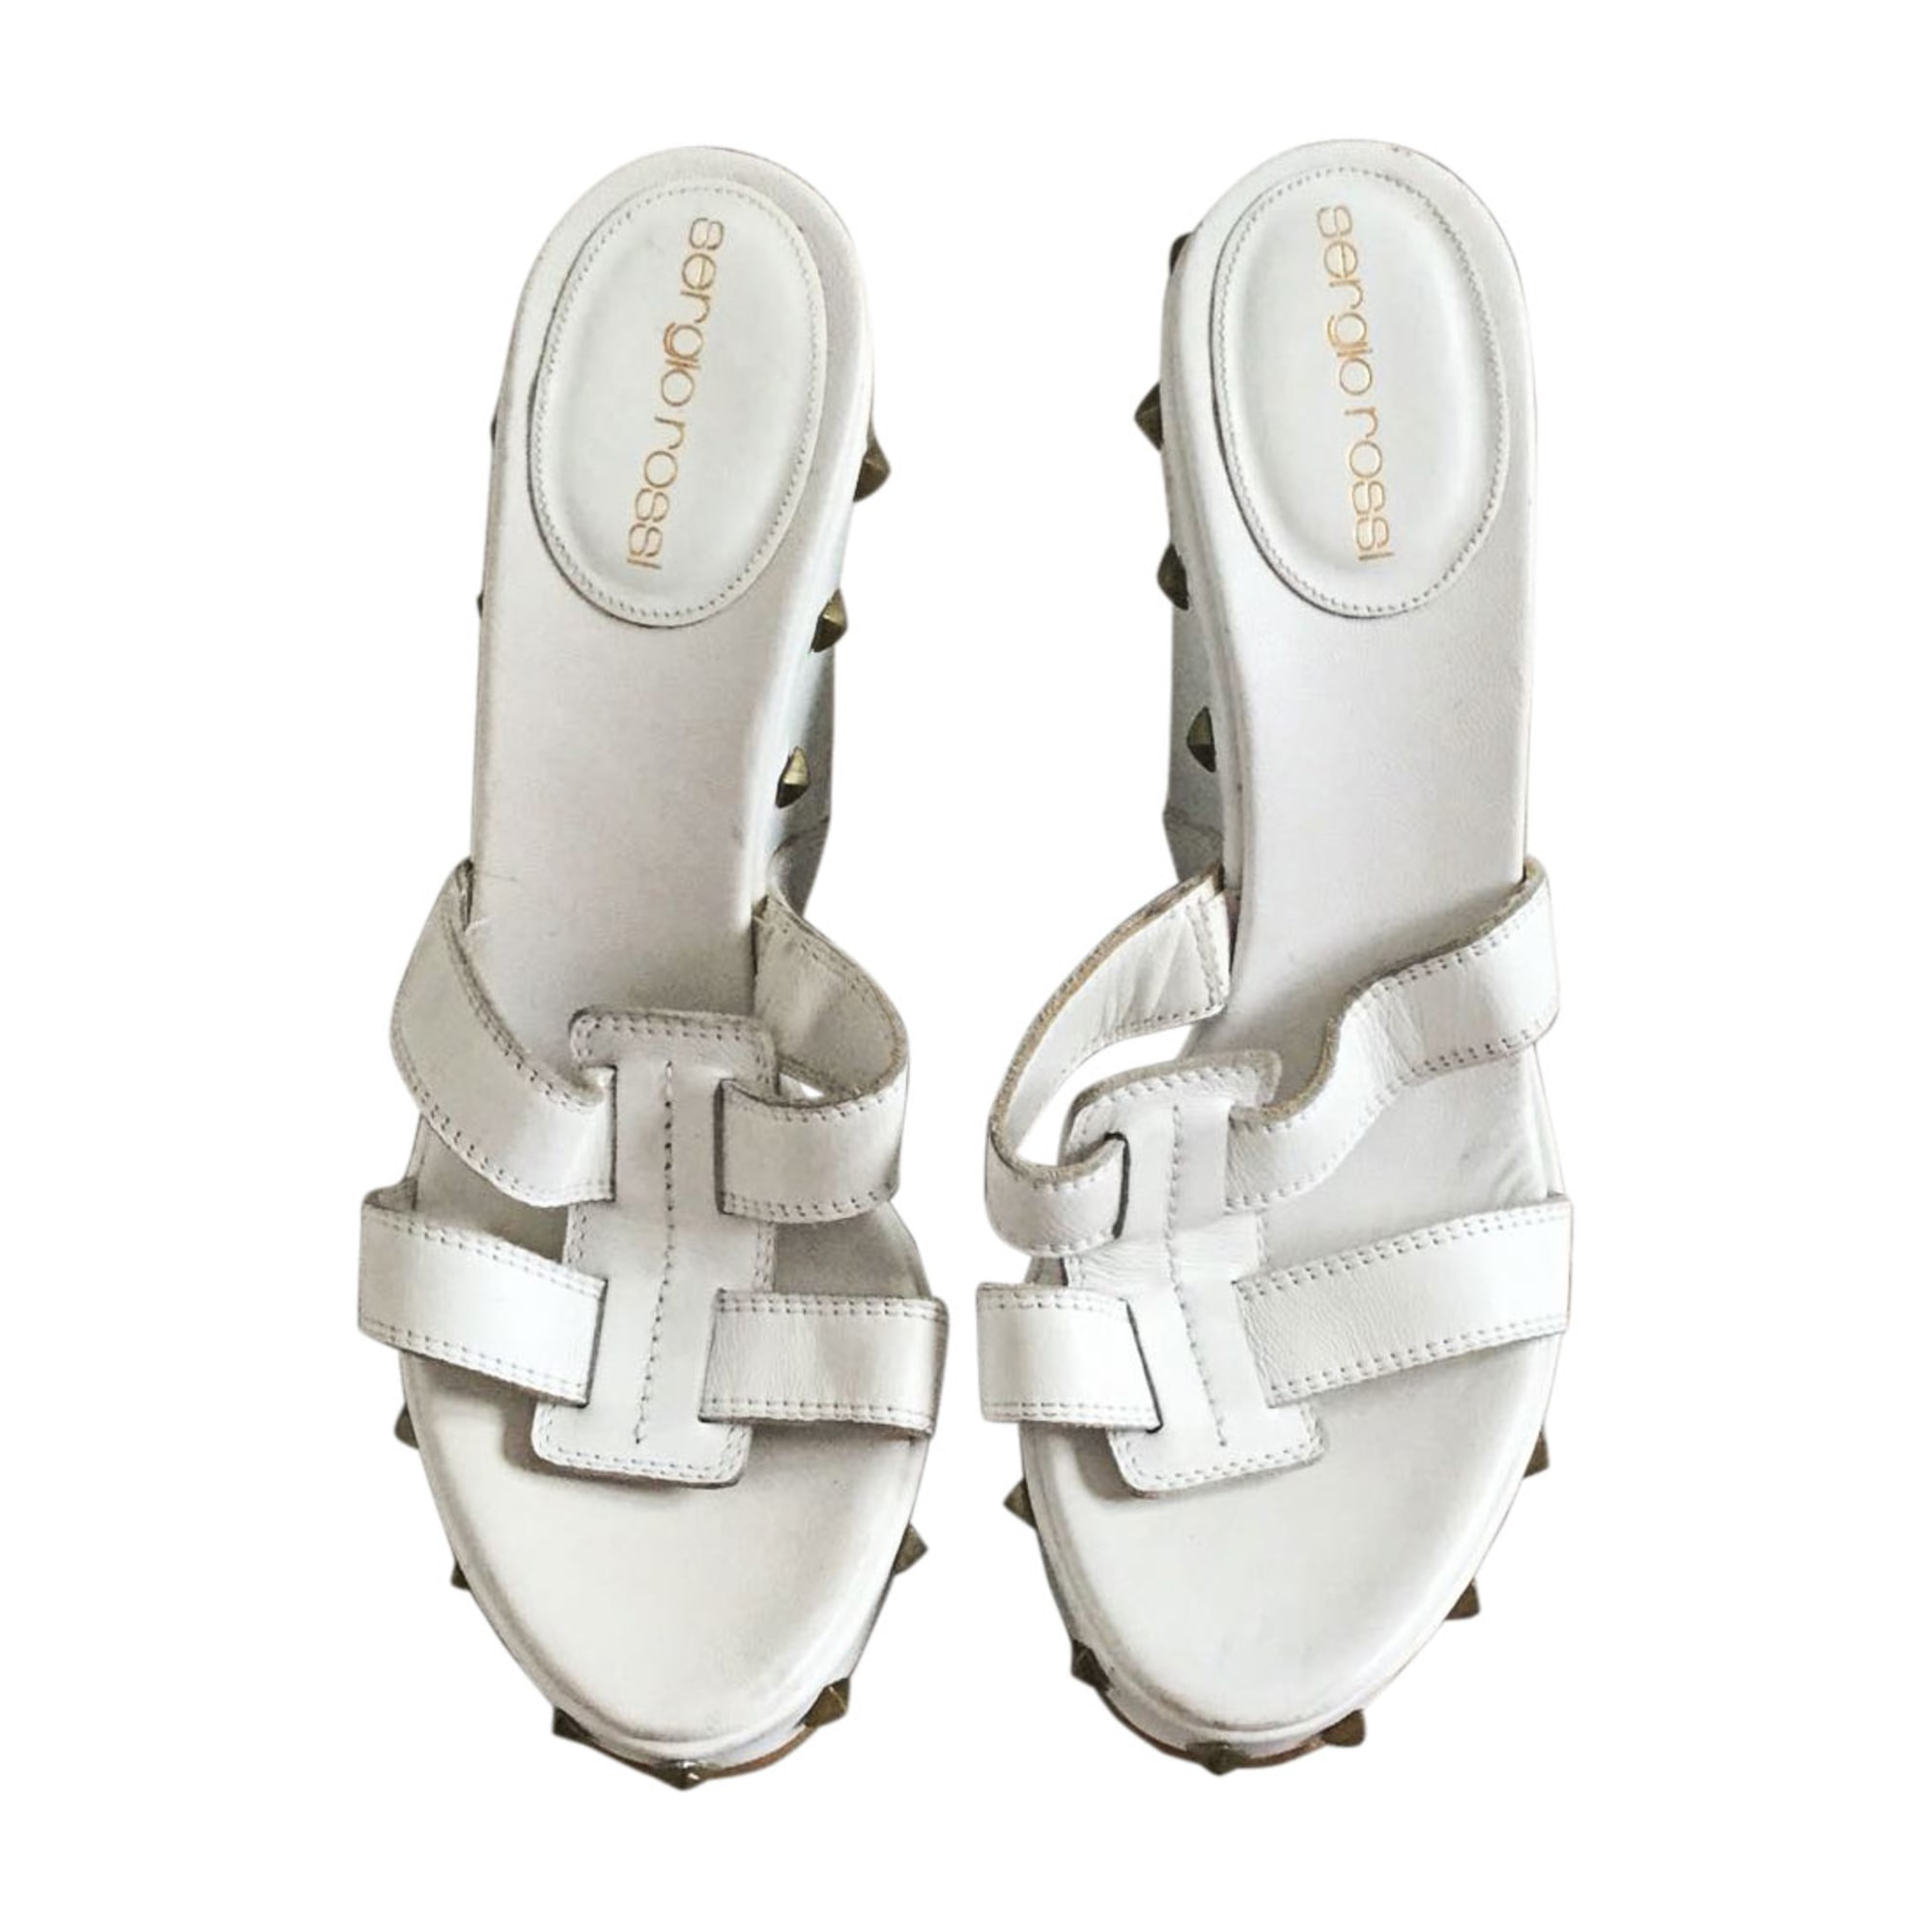 Wedge Sandals SERGIO ROSSI White, off-white, ecru